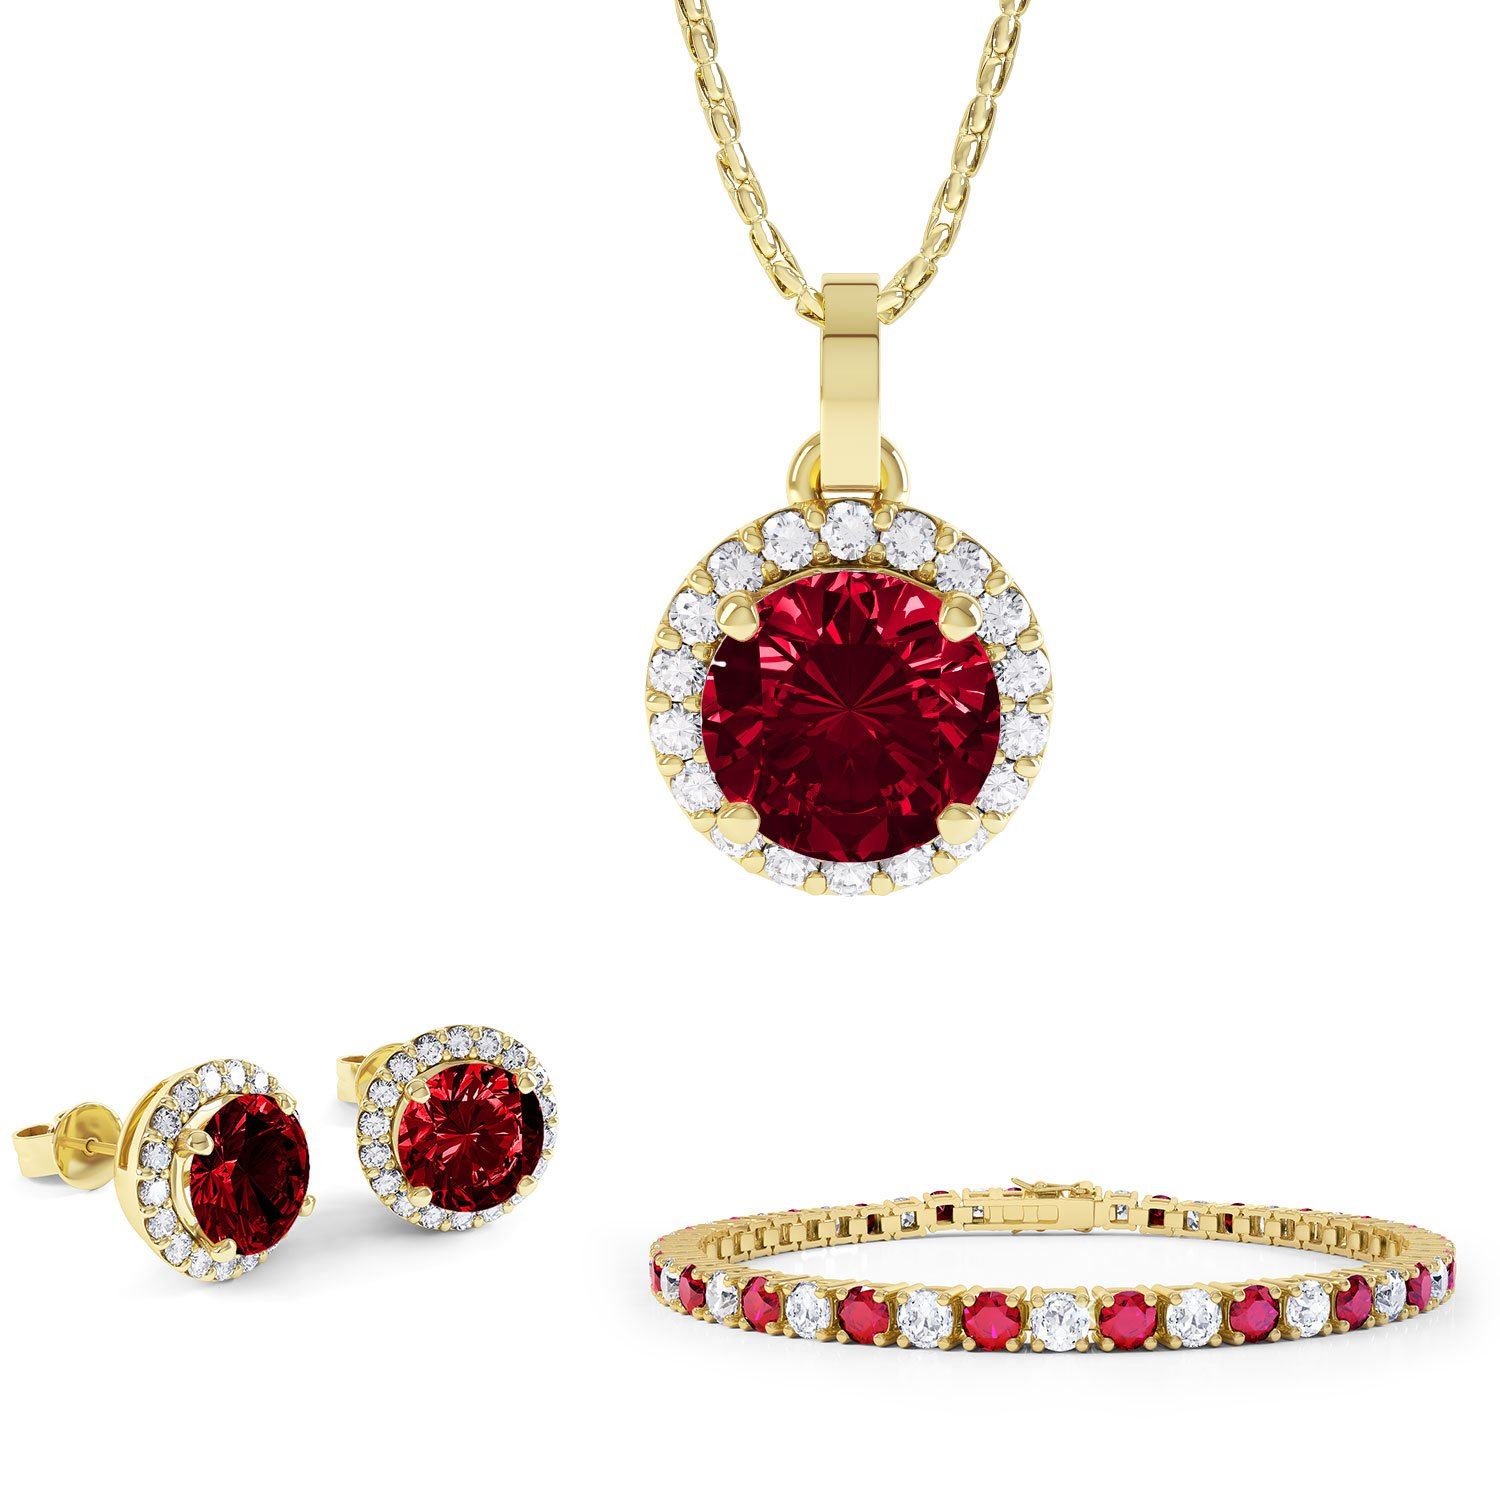 Eternity Ruby 18K Gold Vermeil Jewelry Set with Pendant